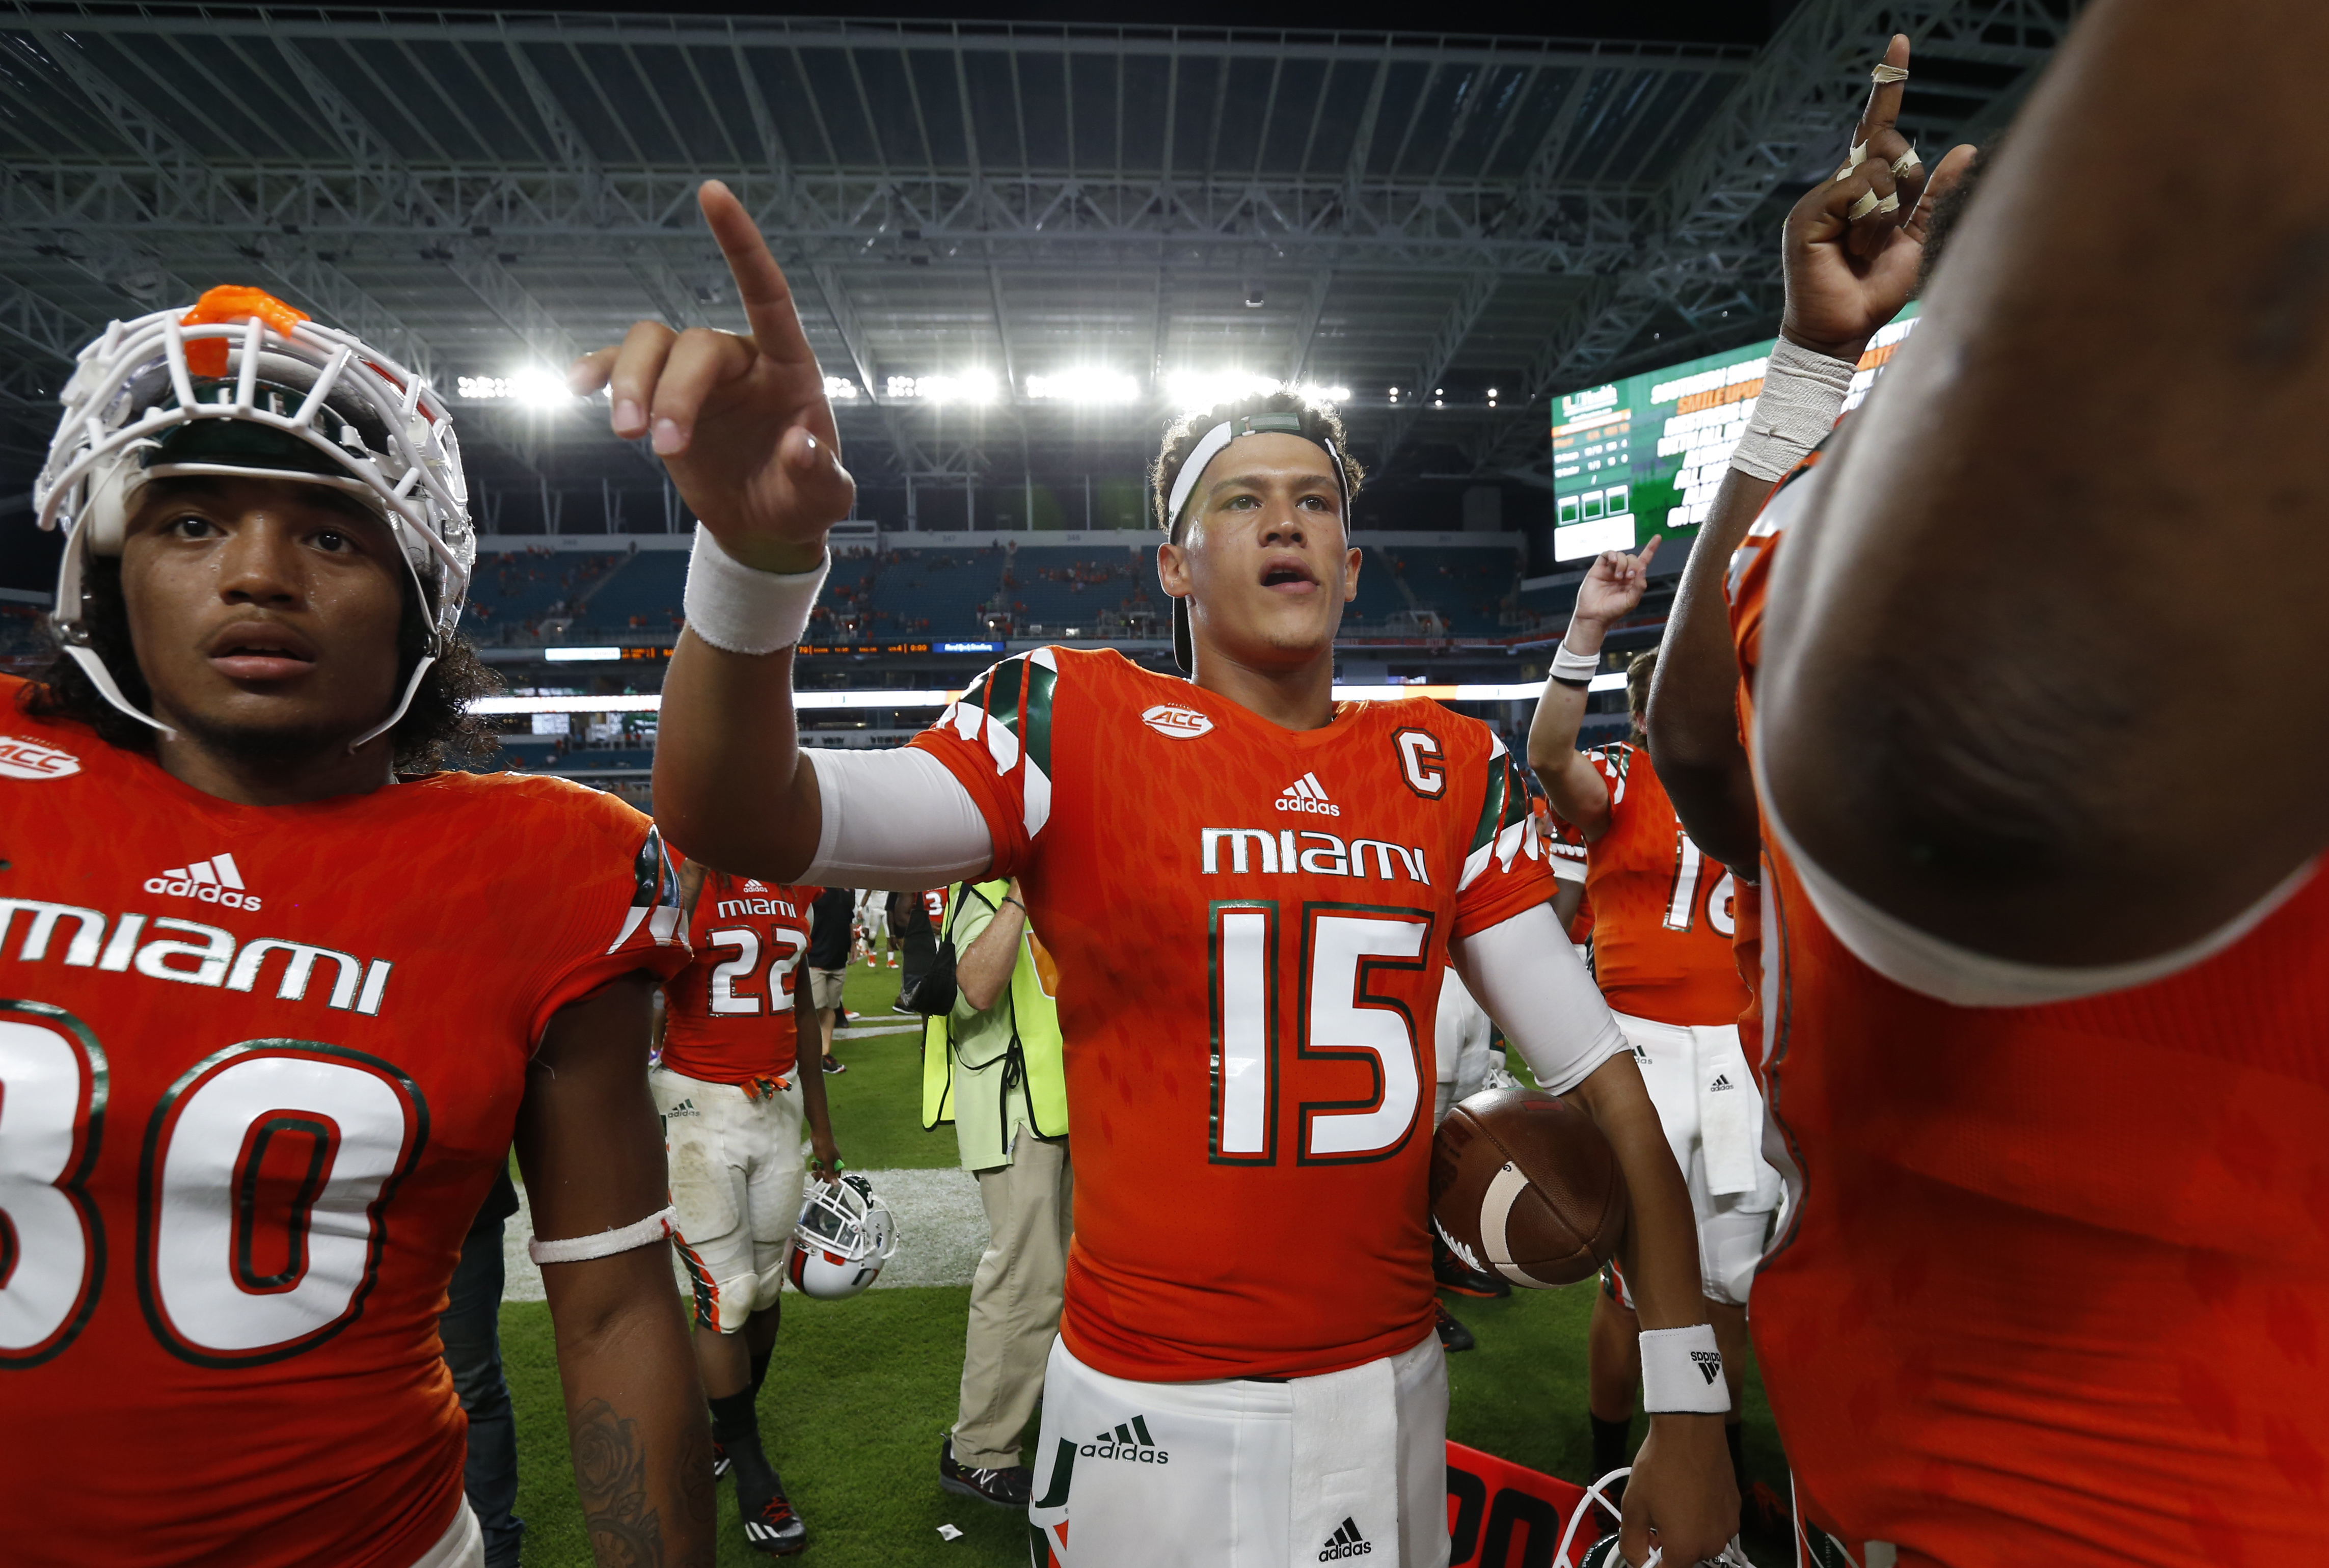 Miami quarterback Brad Kaaya (15) joins in singing the school song after Miami defeated Florida A&M 70-3 in an NCAA college football game, Saturday, Sept. 3, 2016 in Miami Gardens, Fla. Kaaya threw for four touchdowns on his 21st birthday and Miami scored